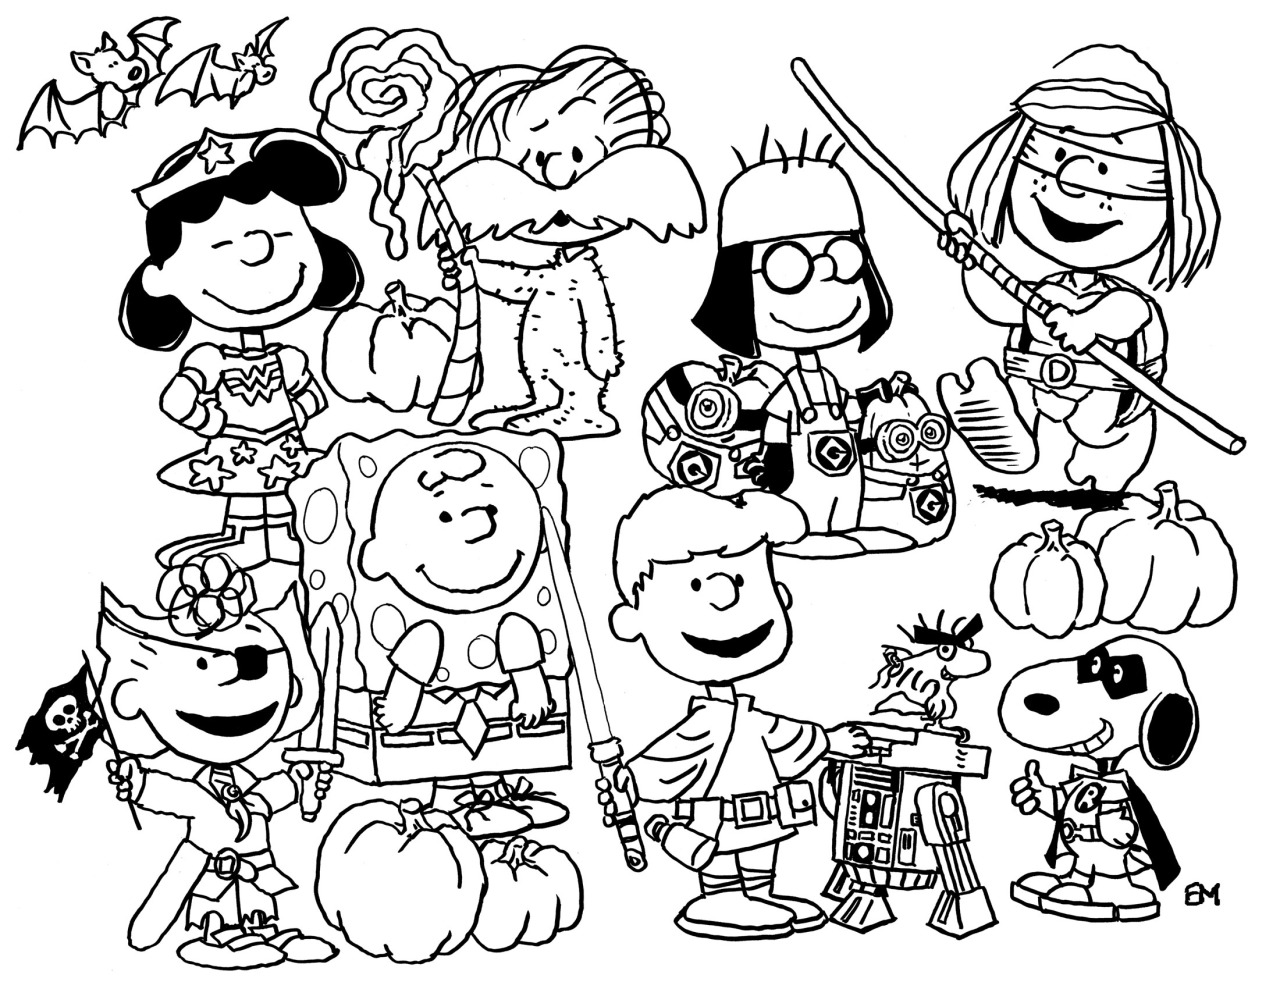 peanuts coloring pages halloween | Peanuts Halloween Coloring Pages at GetDrawings.com | Free ...